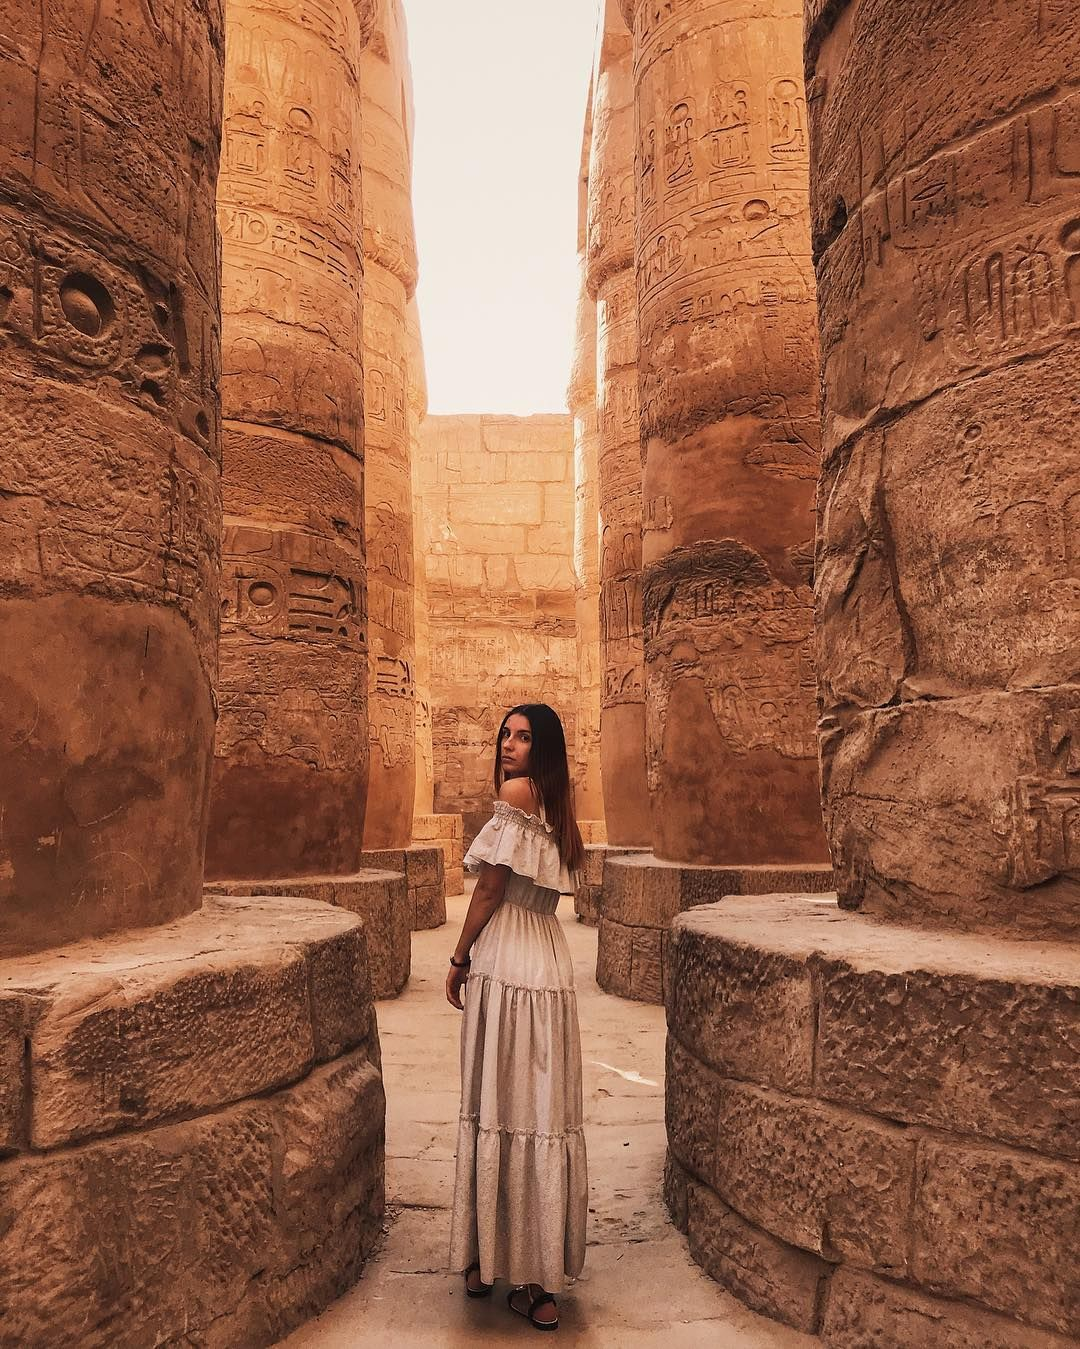 2 Day Trips To Luxor From Hurghada Luxor Tours From Hurghada Egypt Travel Places In Egypt Egypt Tours